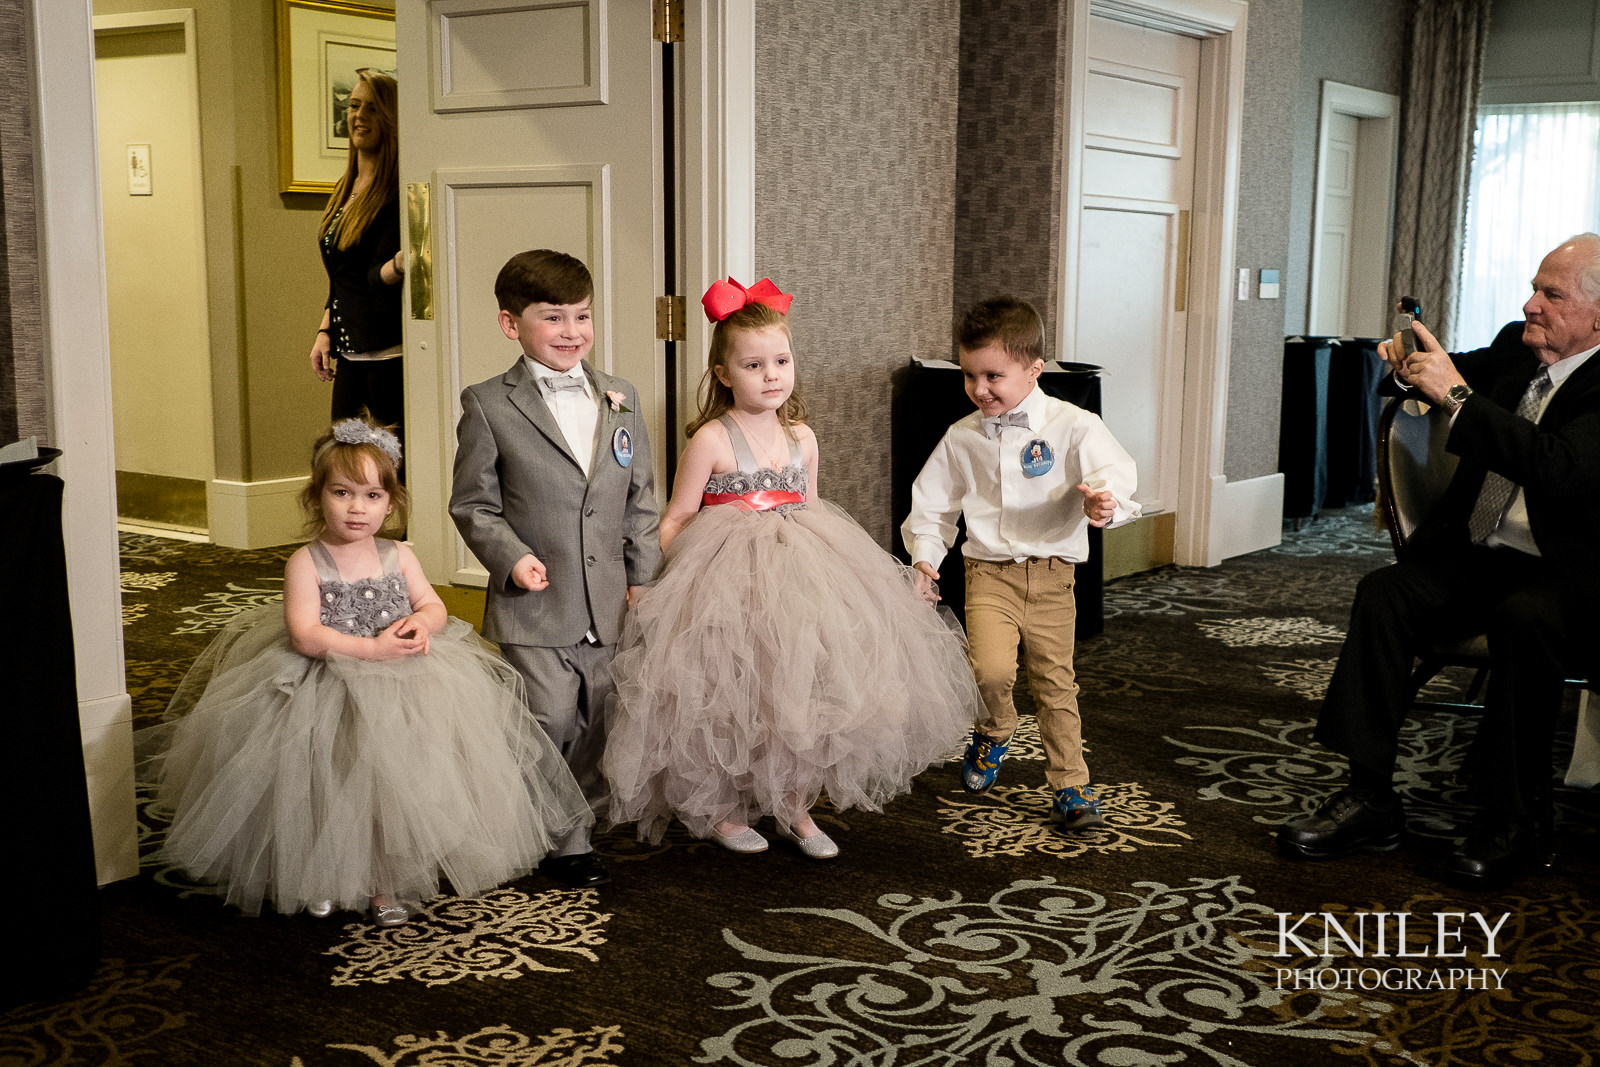 078 - Woodcliff Hotel - Rochester NY wedding photo - Kniley Photography.jpg